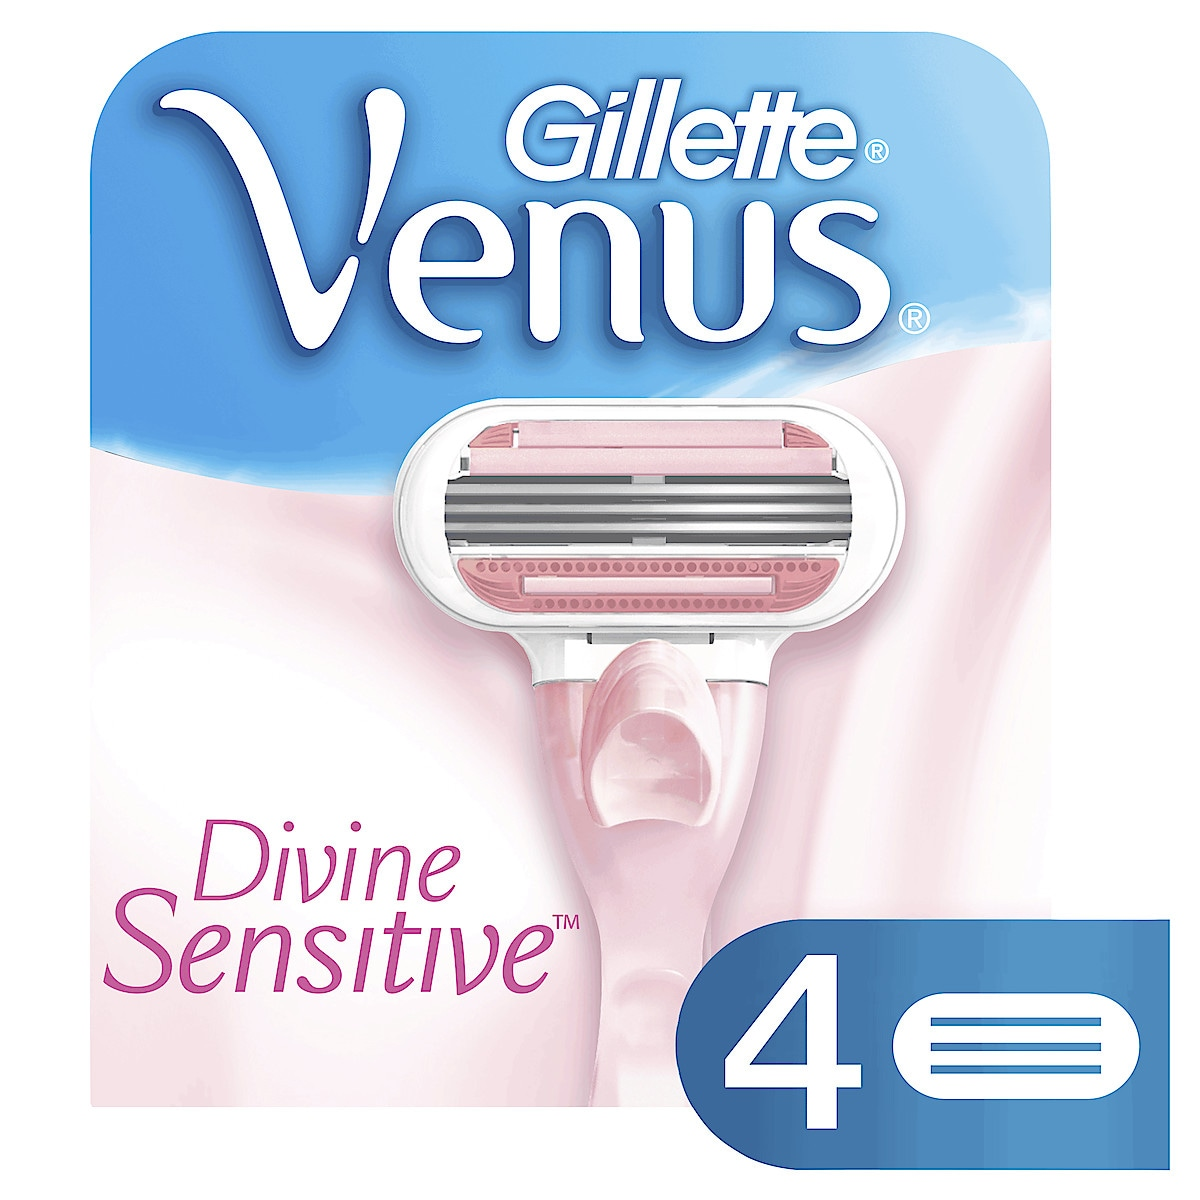 Gillette Venus Divine Sensitive Razor Blade Cartridges 4-pack